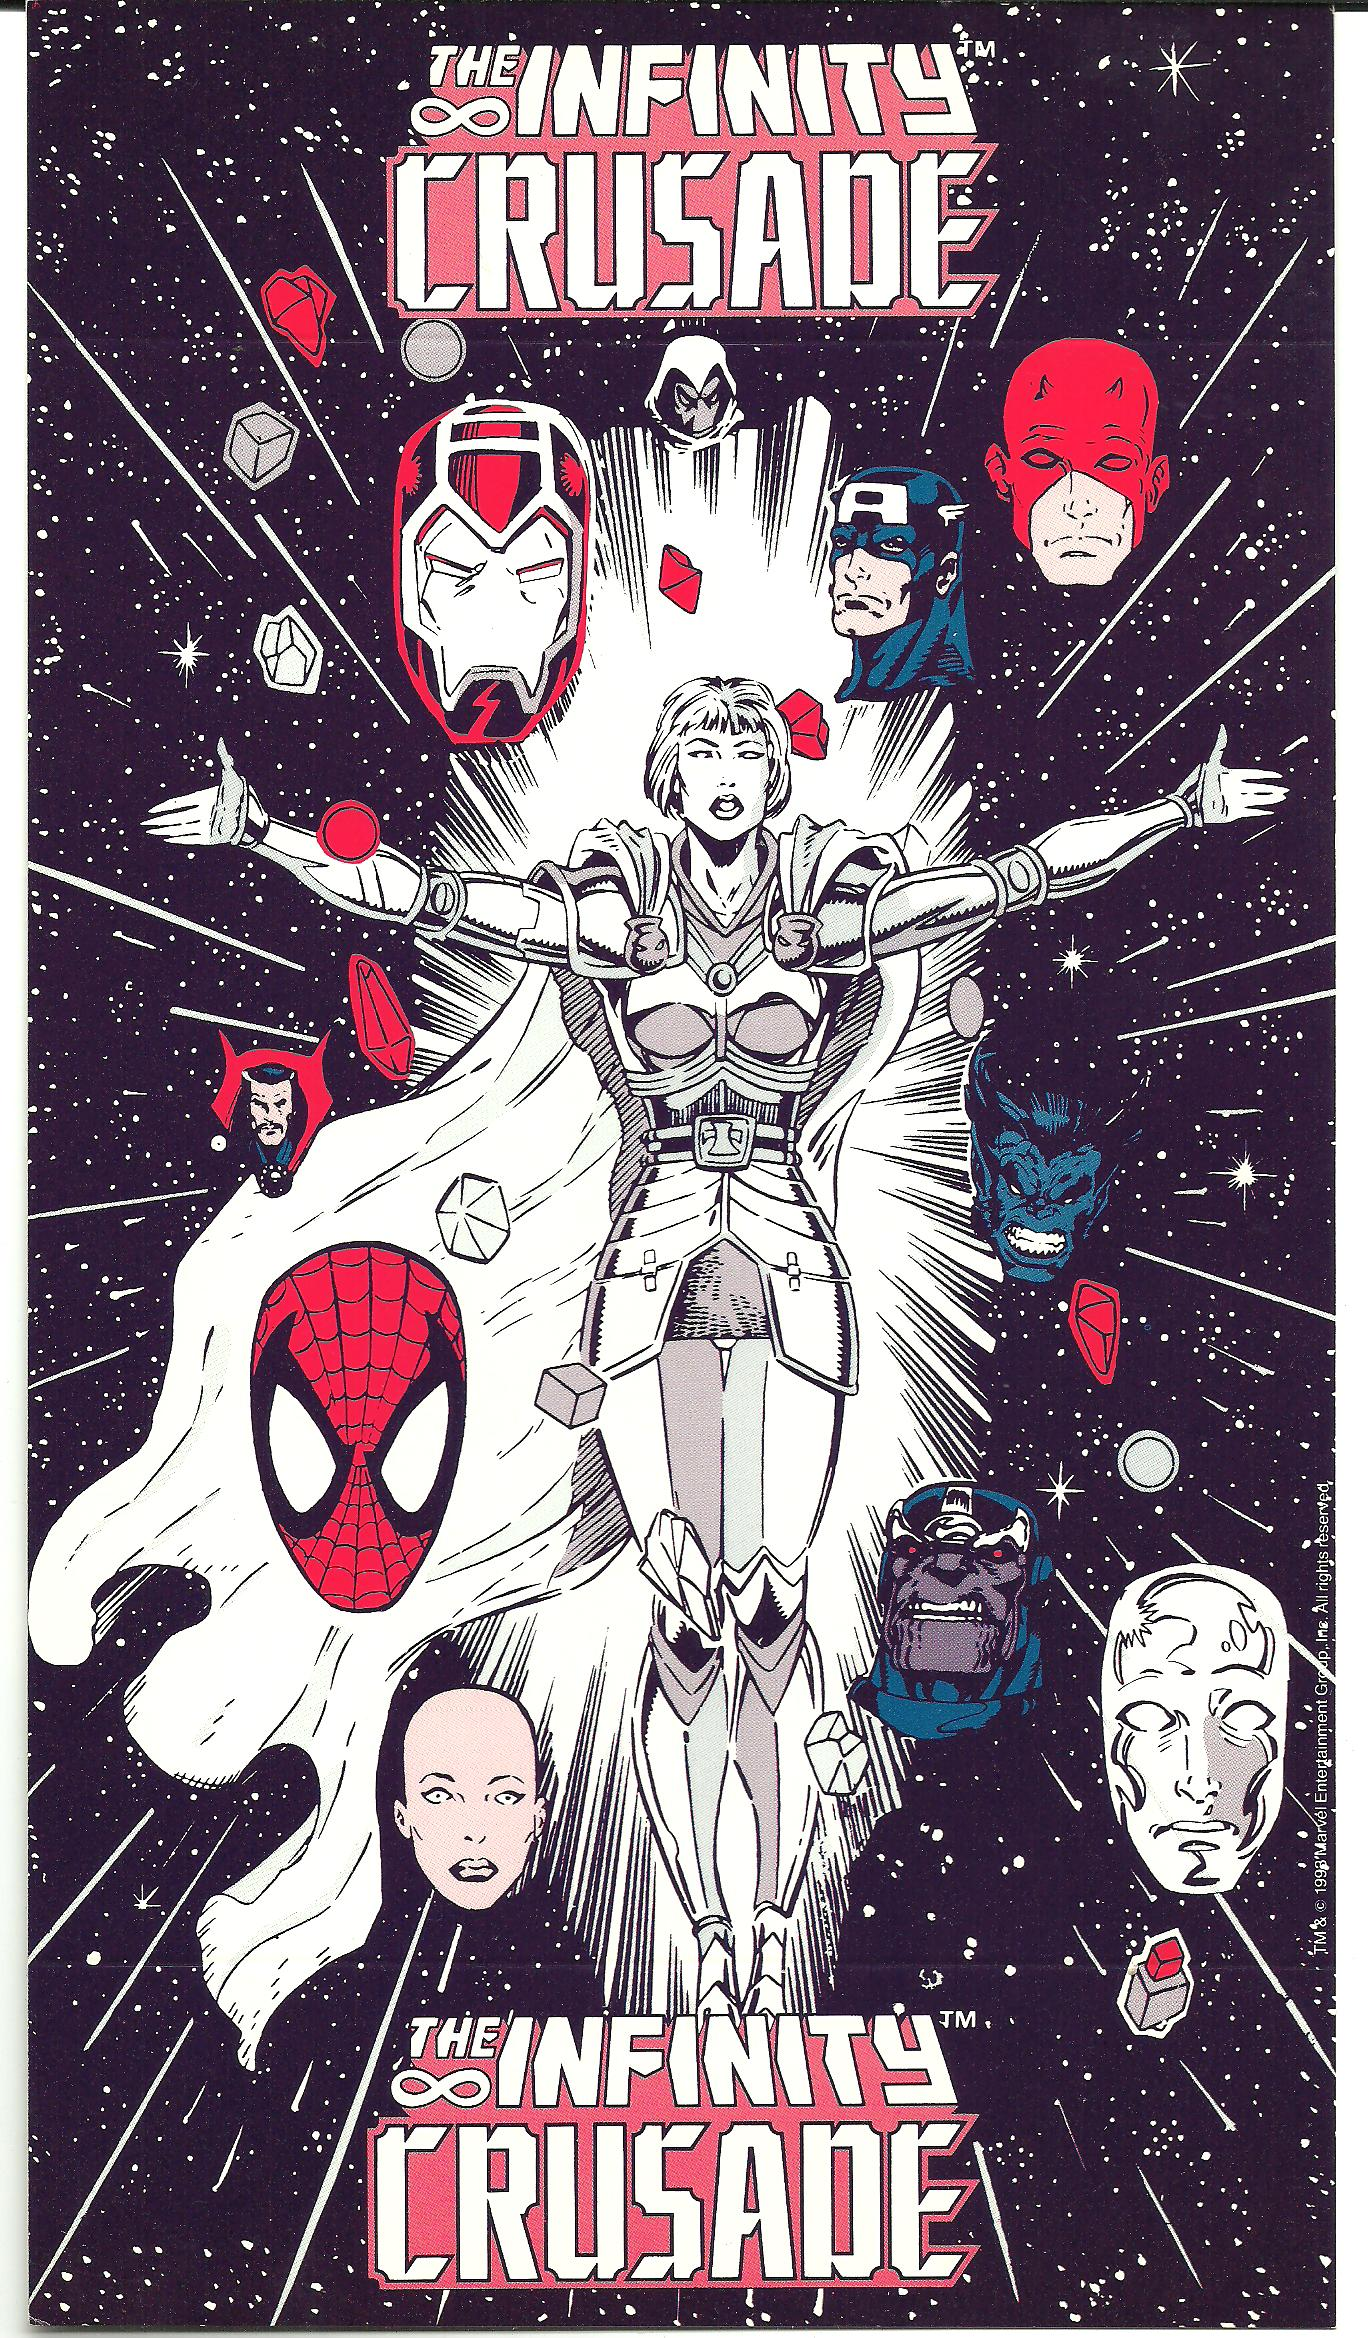 marvel chronology project The marvel chronology project: by russ chappell -- a painfully complete list of issue appearances for all your favorite characters it is formatted with by characters name, with a list of issues they appear in following (no descriptions though.